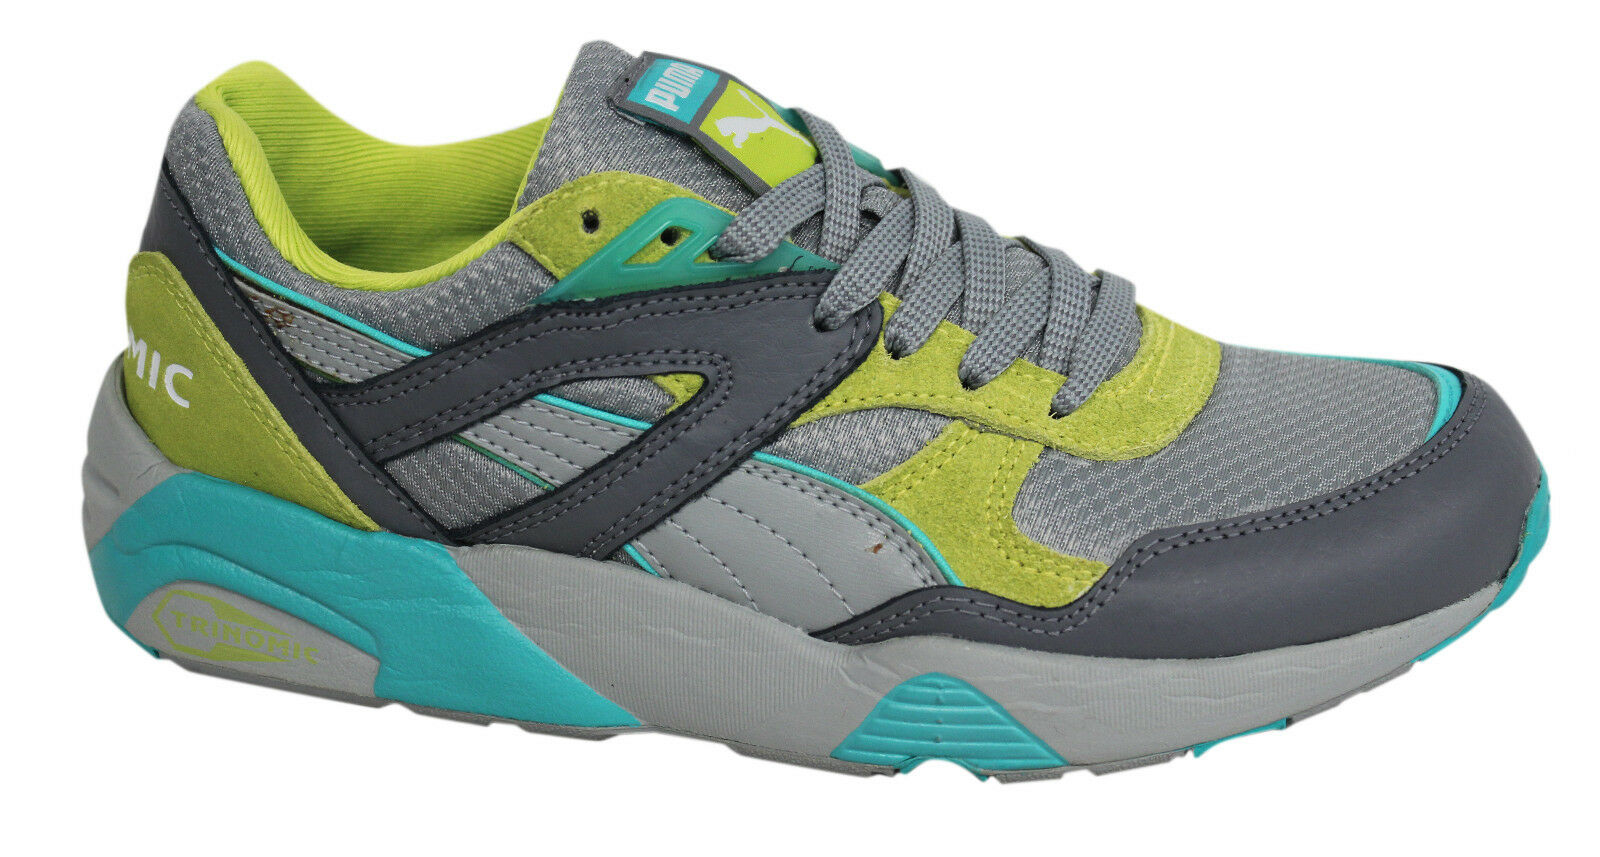 Puma Trinomic R698 NM Lace Up Grey Lime Turquoise Mens Trainers 352964 01 U5